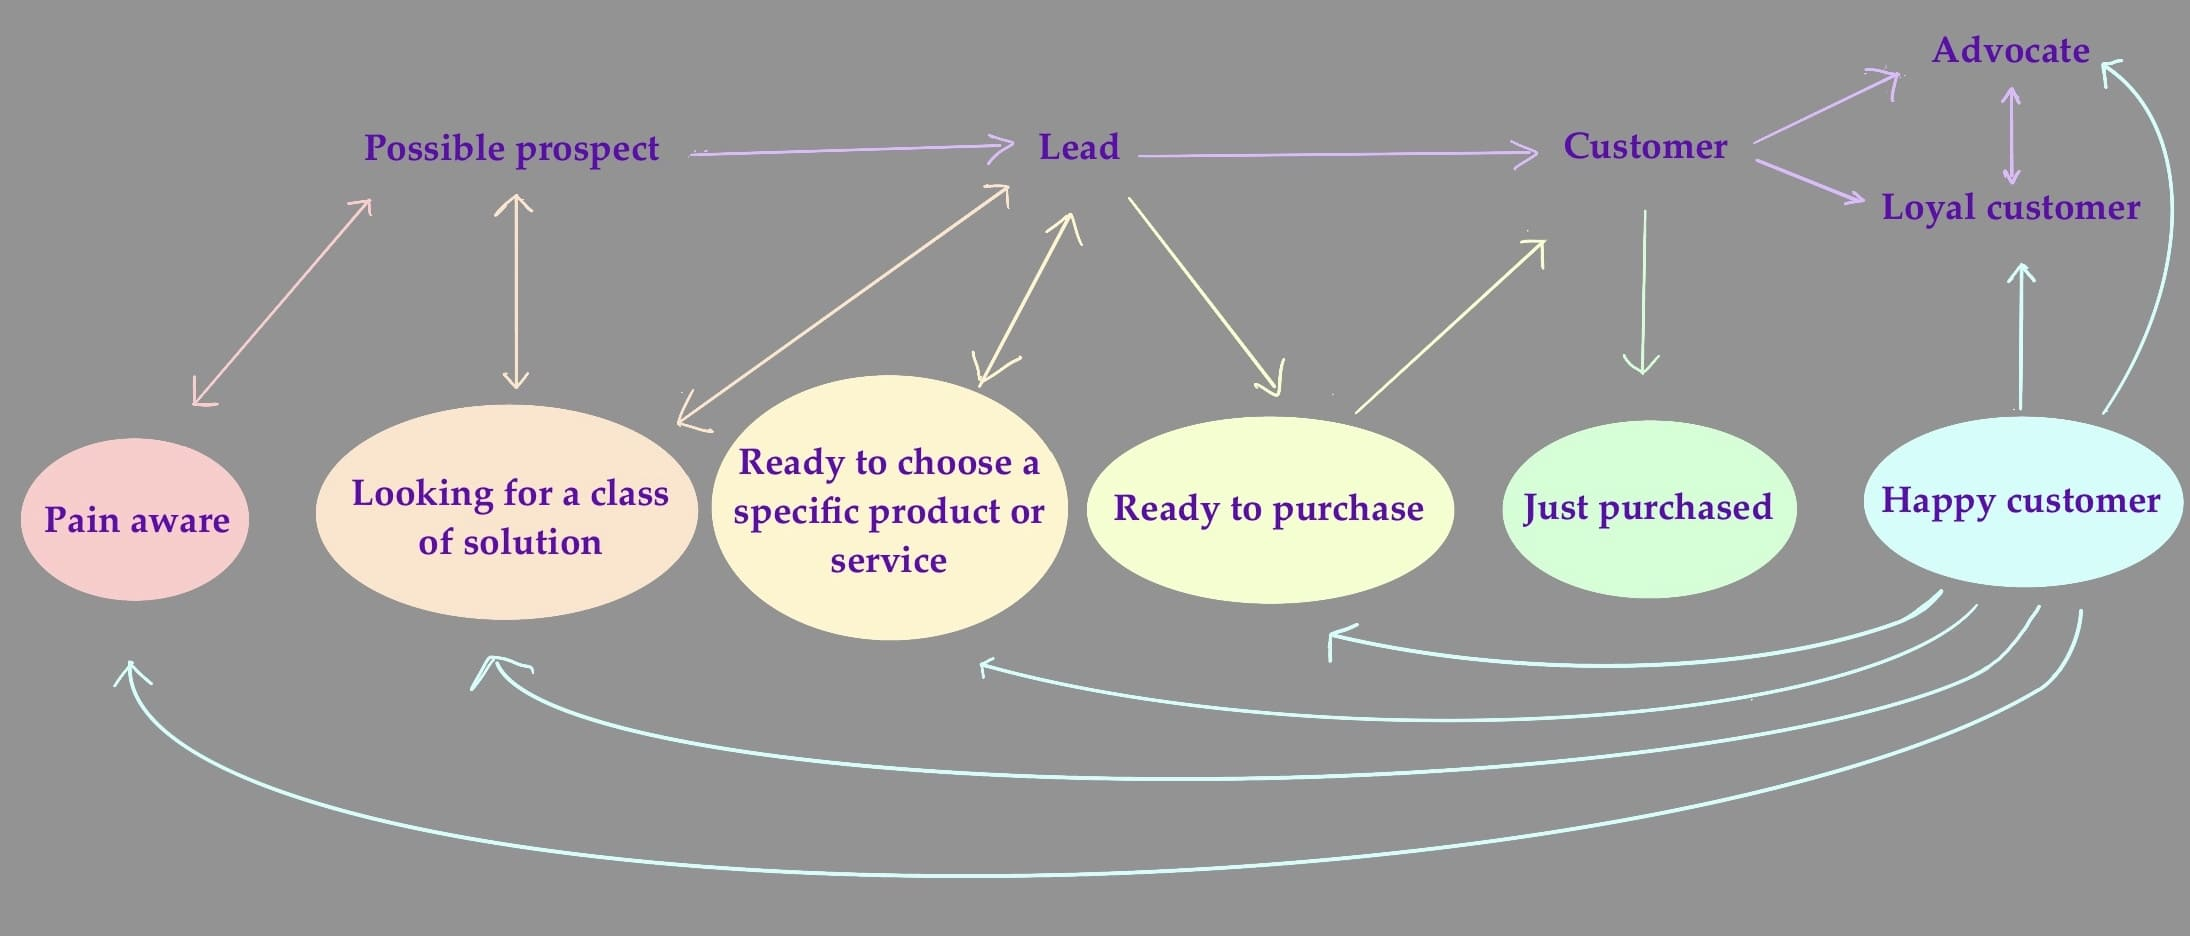 Describes how each of the sections in the sales funnel and buyer journey interact to build an entire sales journey